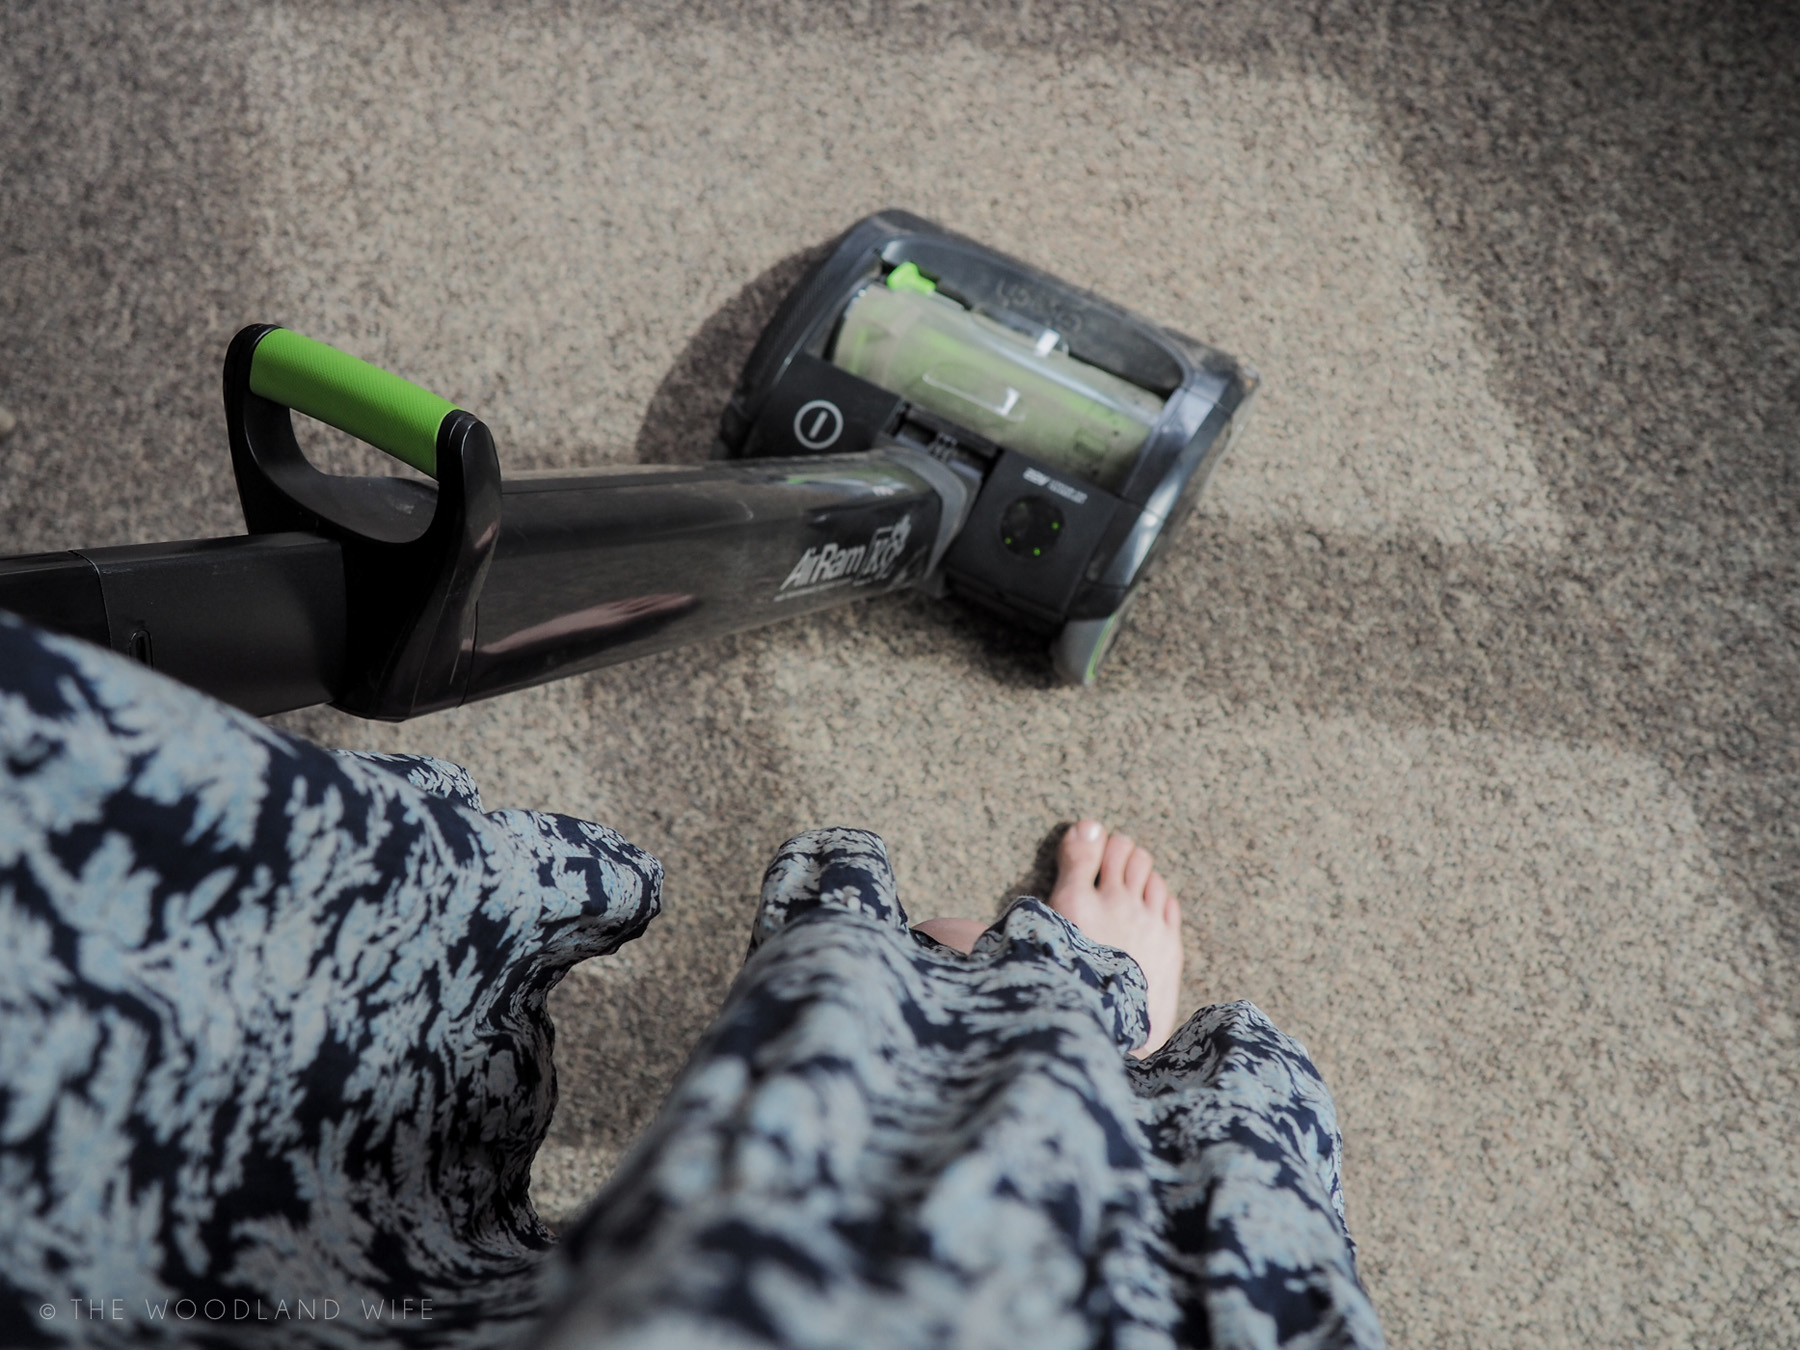 The Woodland Wife - Gtech AirRam K9 and Gtech Multi Cordless Vacuum - Chronic Illness